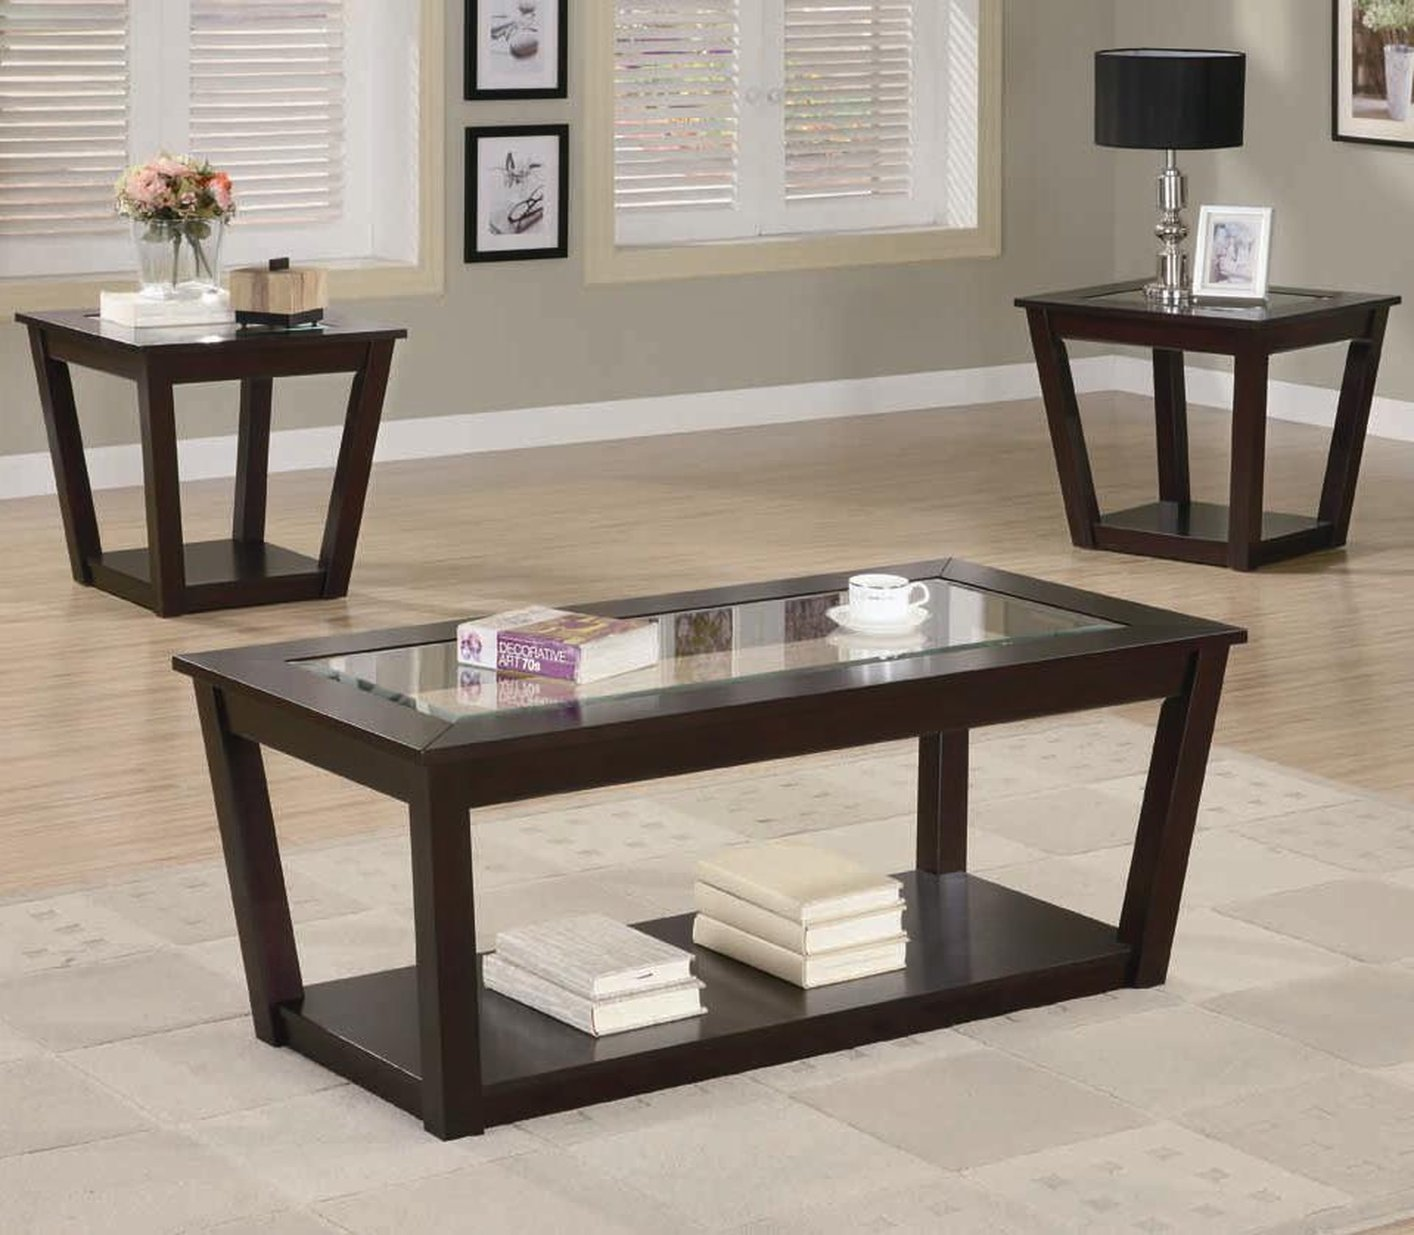 Fenmore Brown Glass Coffee Table Set Steal A Sofa Furniture Outlet Los Angeles Ca